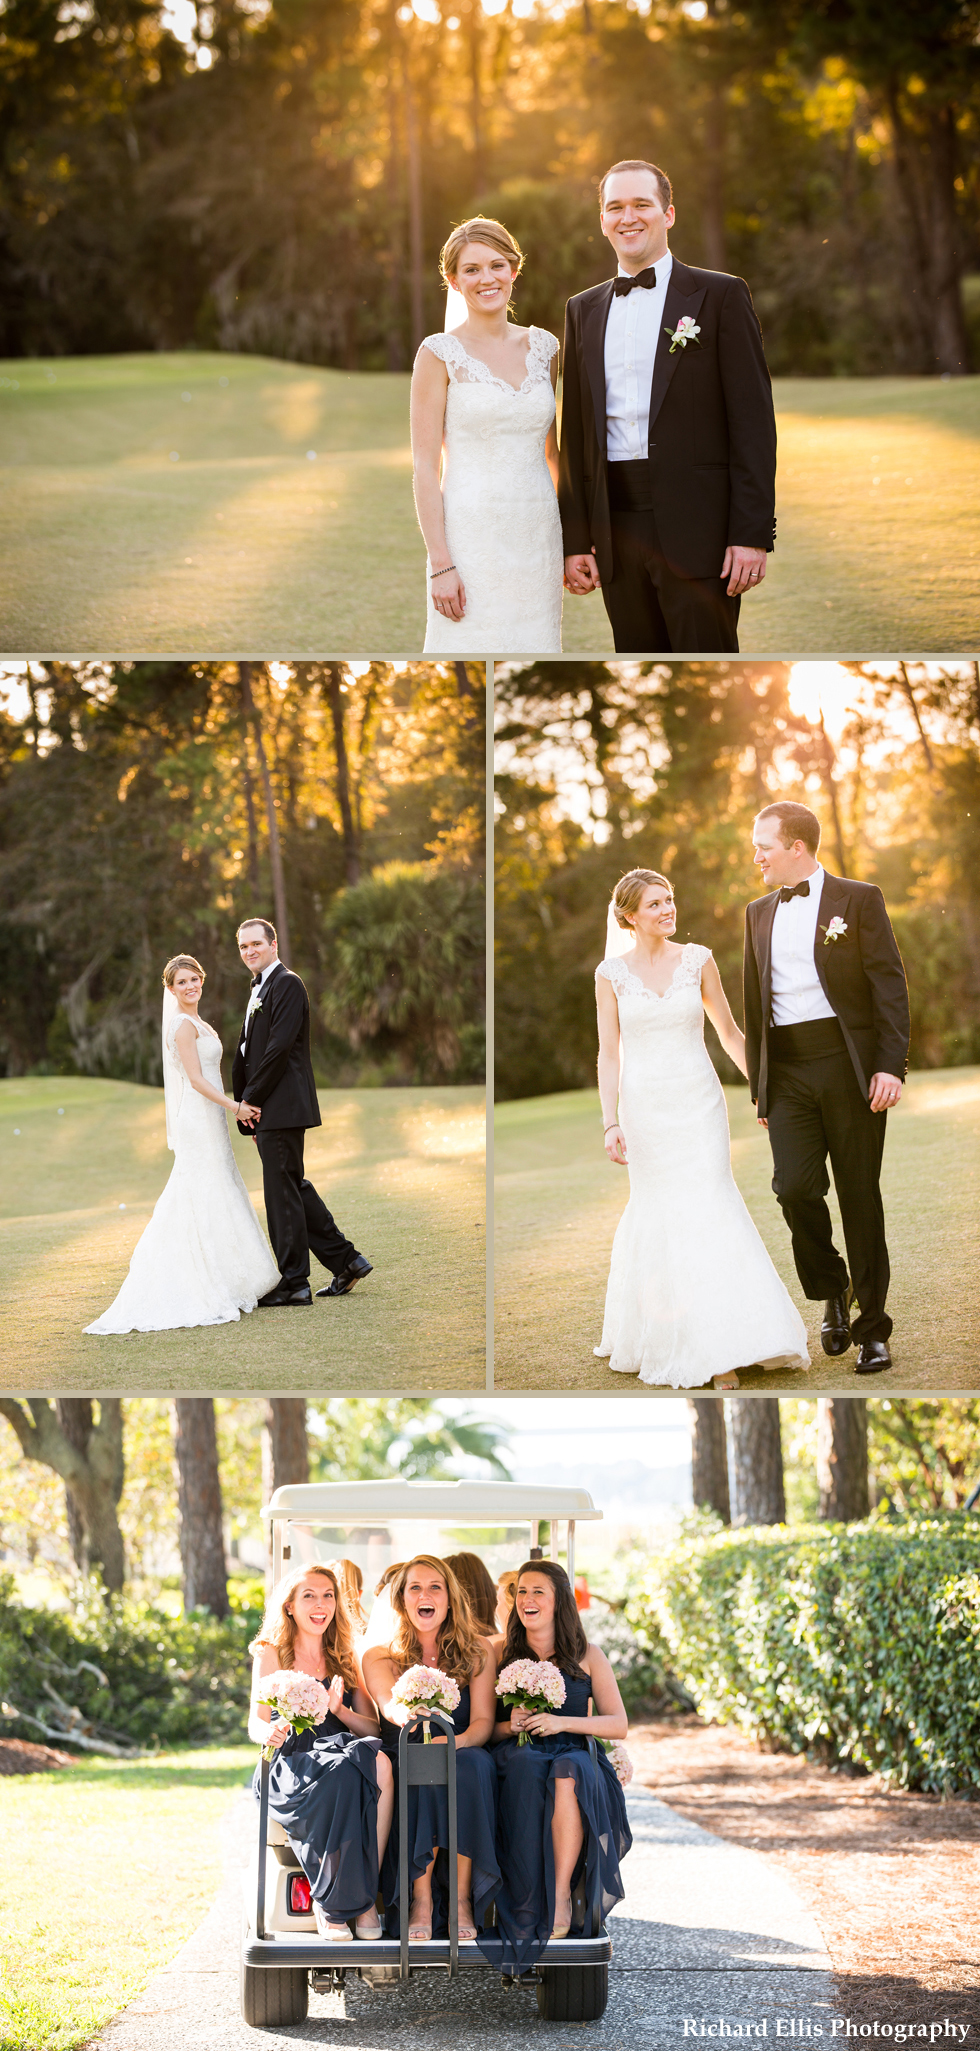 Sneak peek of Jennifer and David's wedding photographed by Charleston wedding photographer Richard Ellis Photography